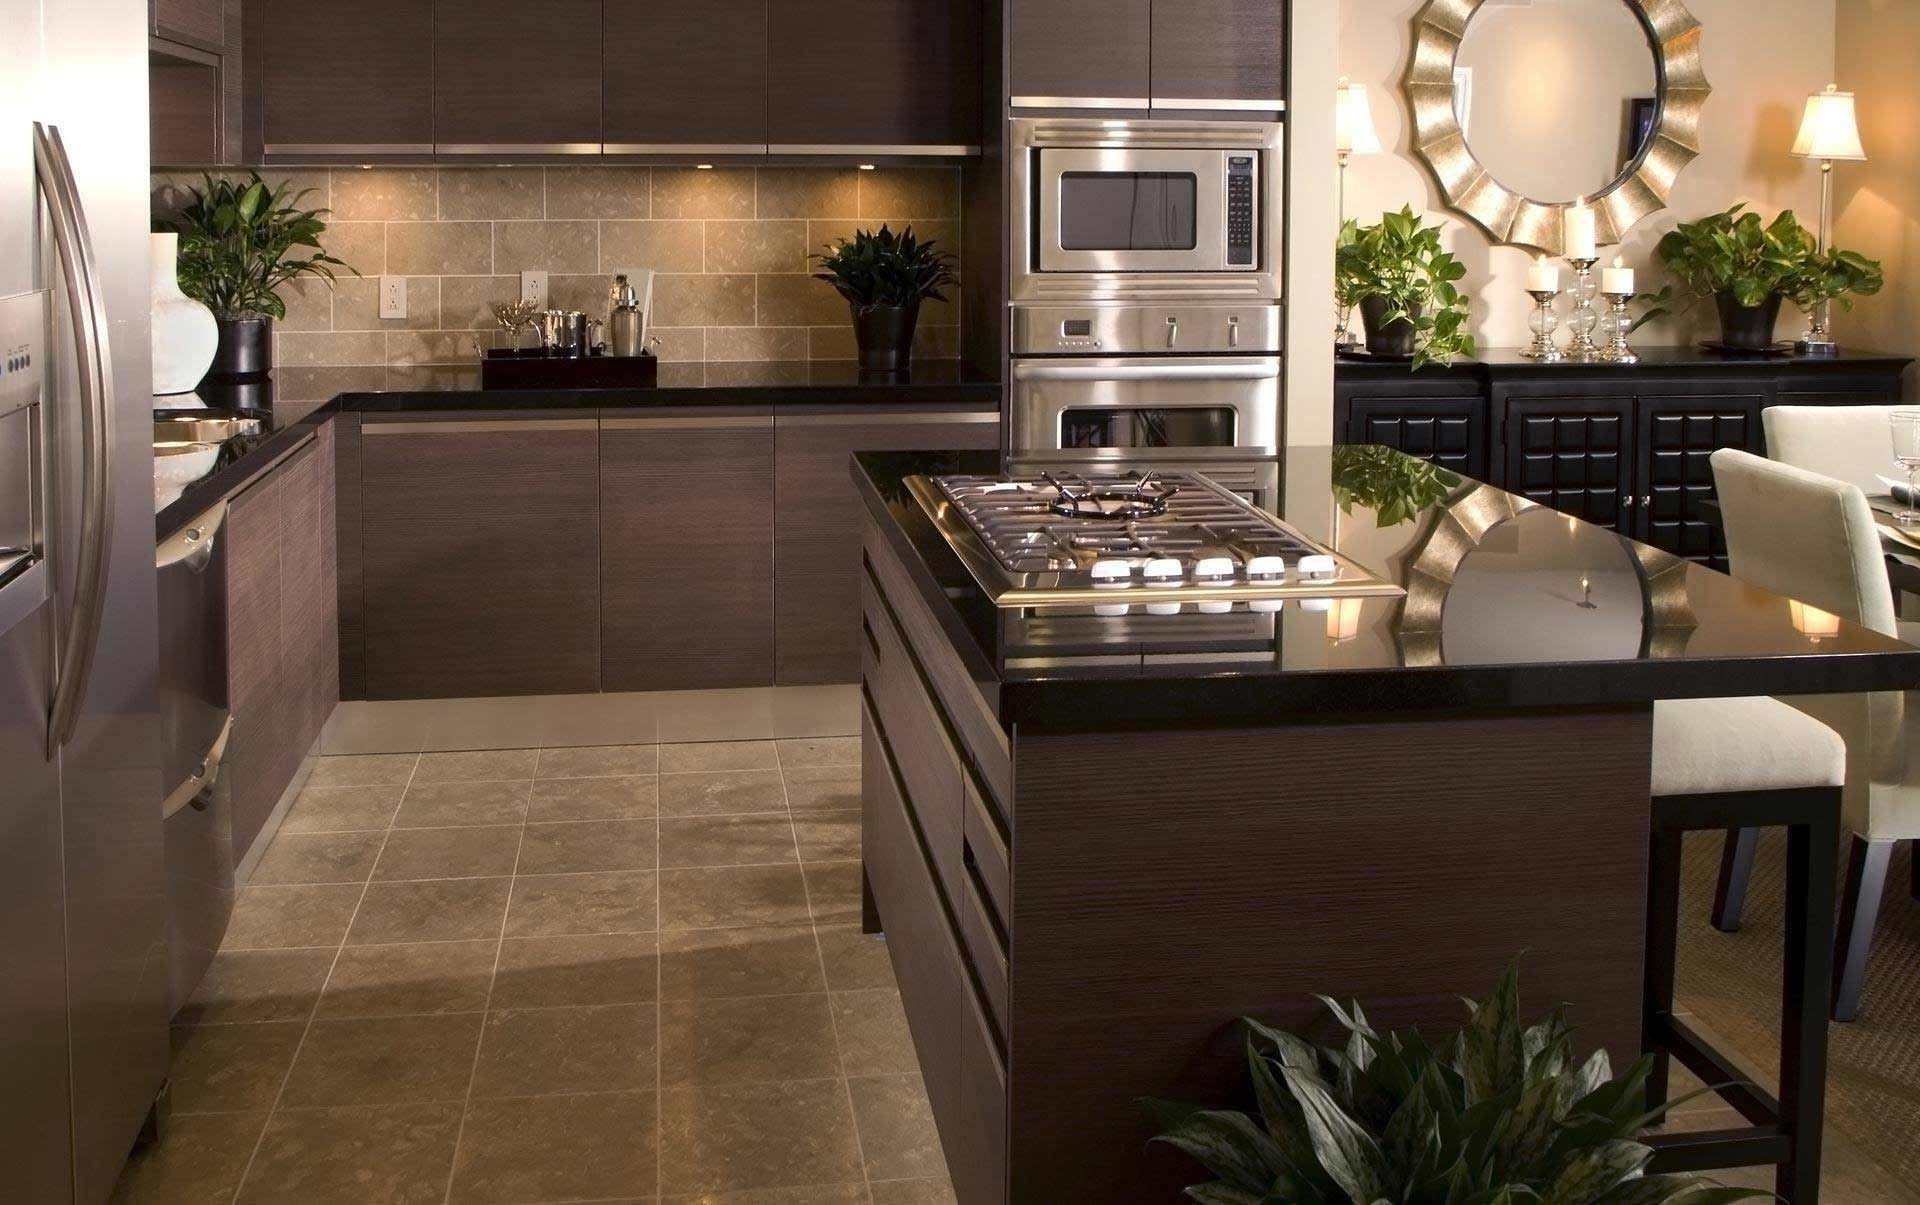 Top 65+ Luxury Kitchen Design Ideas (Exclusive Gallery